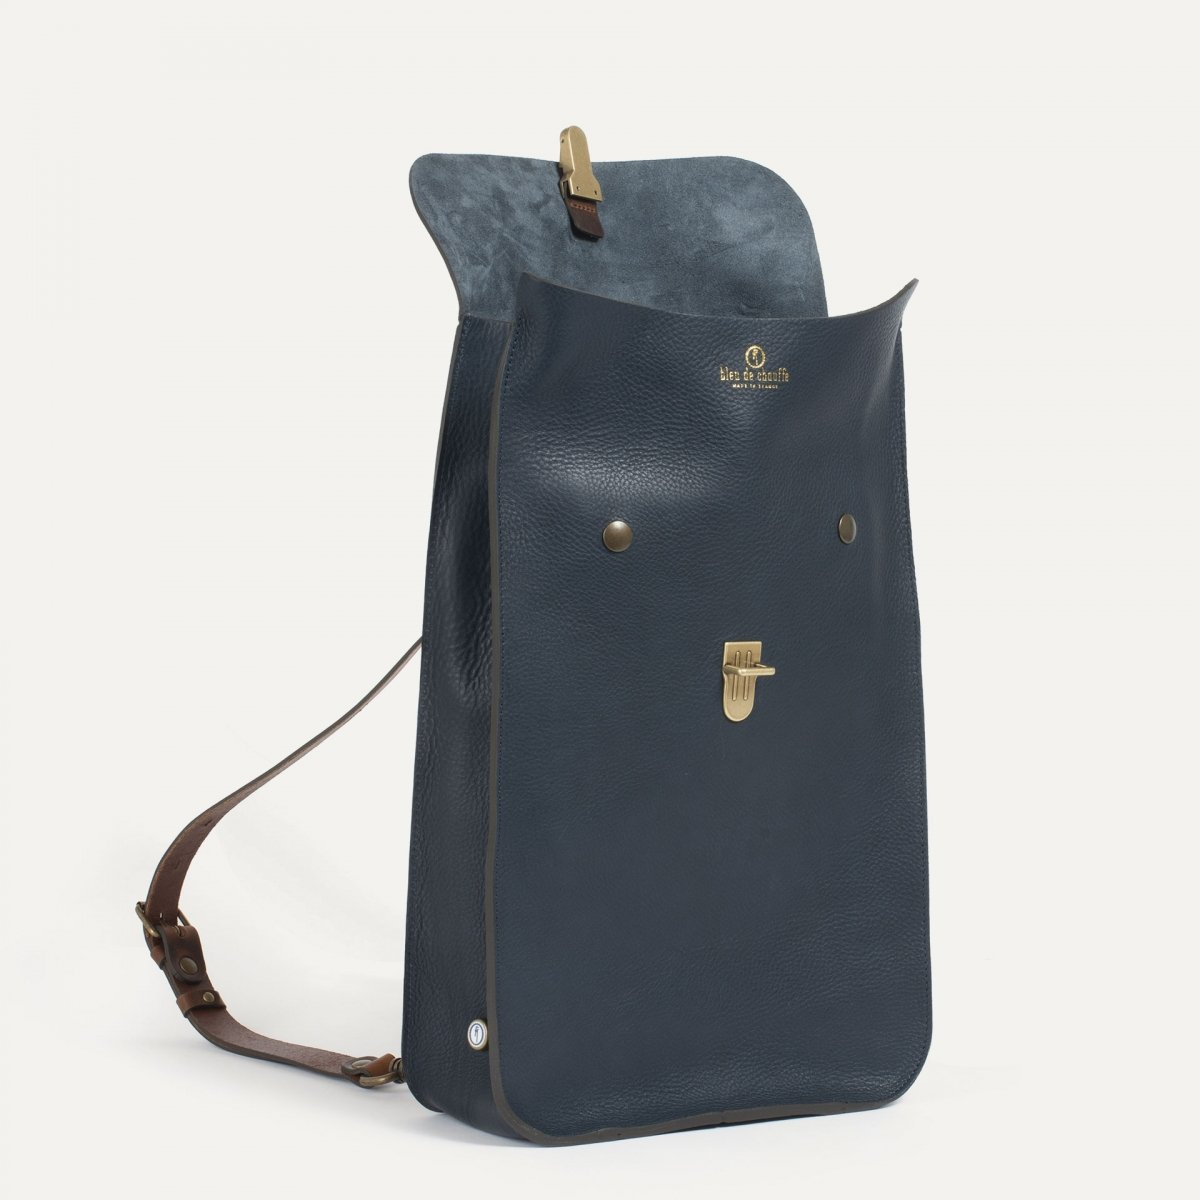 Puncho leather backpack - Navy Blue / E Pure (image n°3)